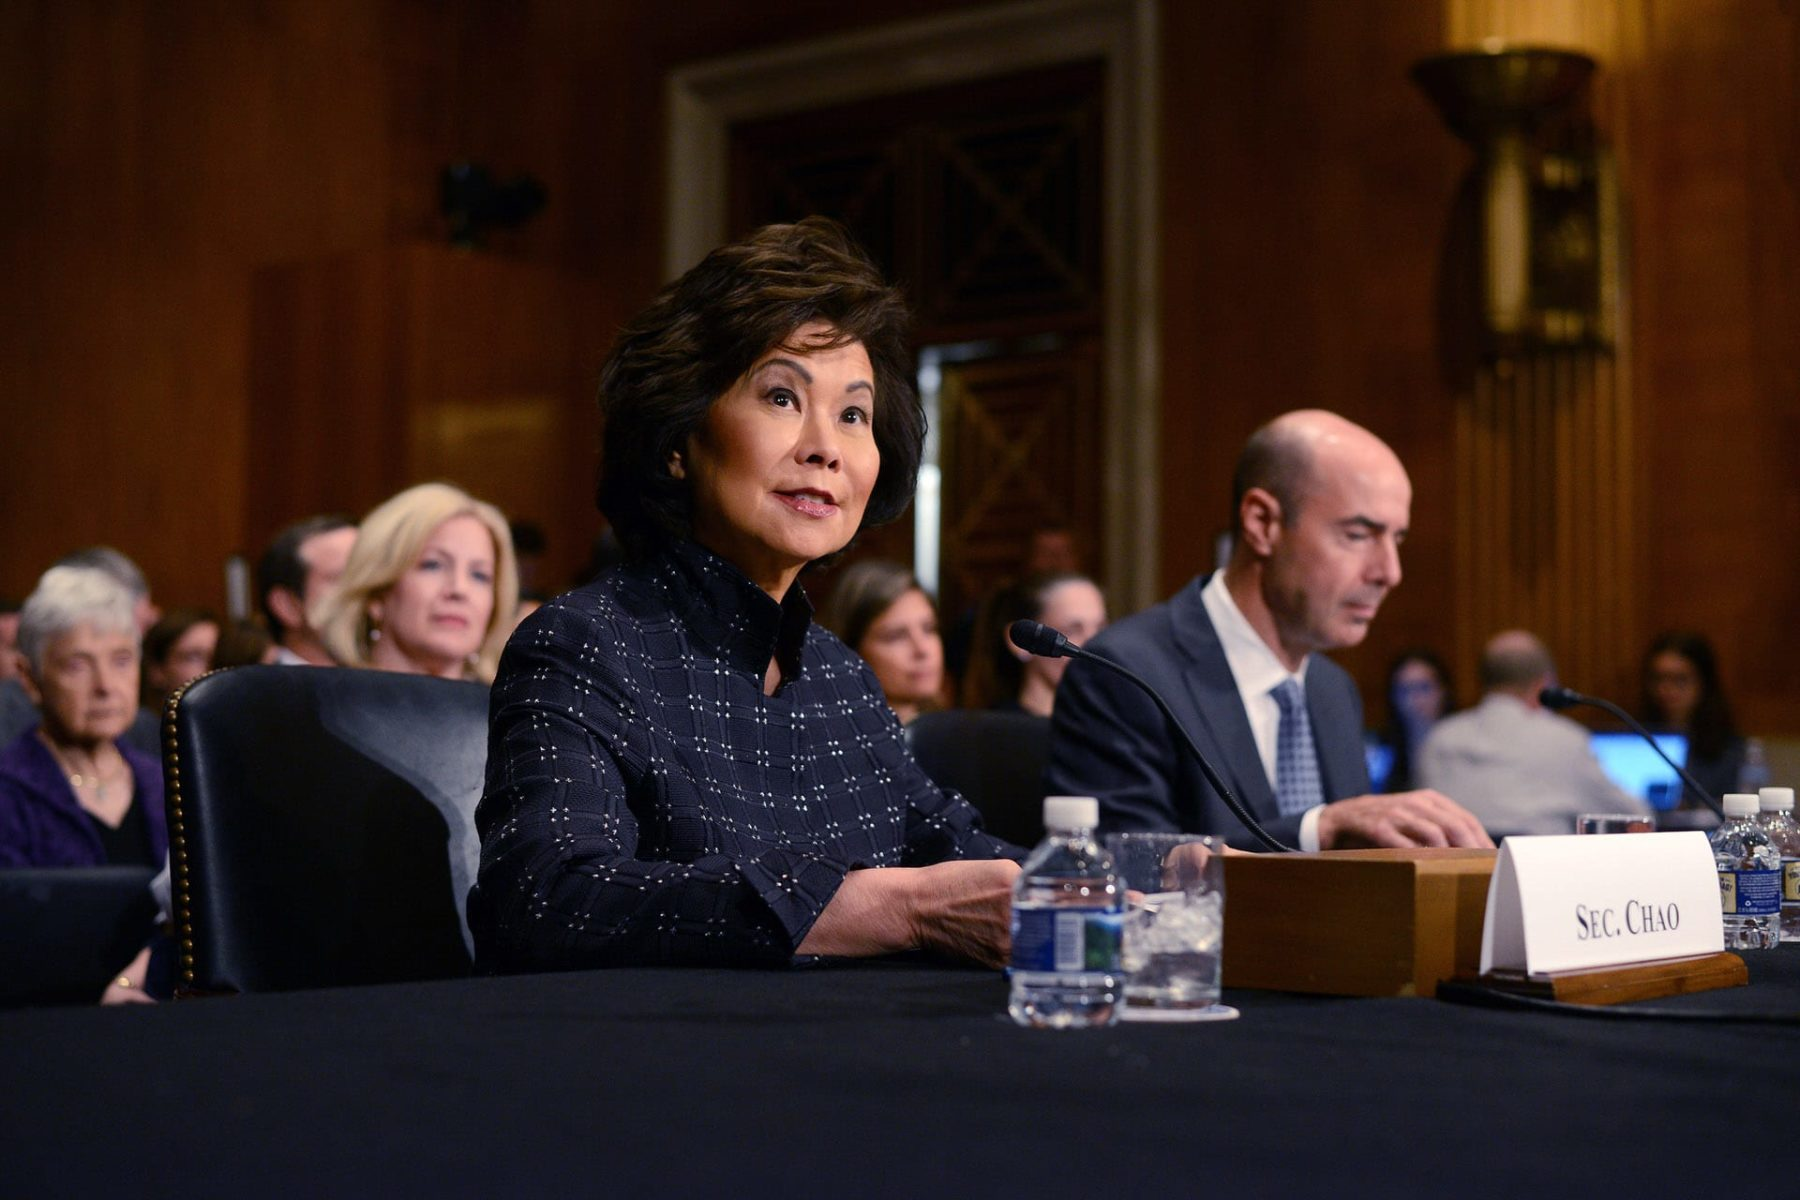 U.S. Secretary of Transportation Elaine Chao sitting at a table for a hearing.